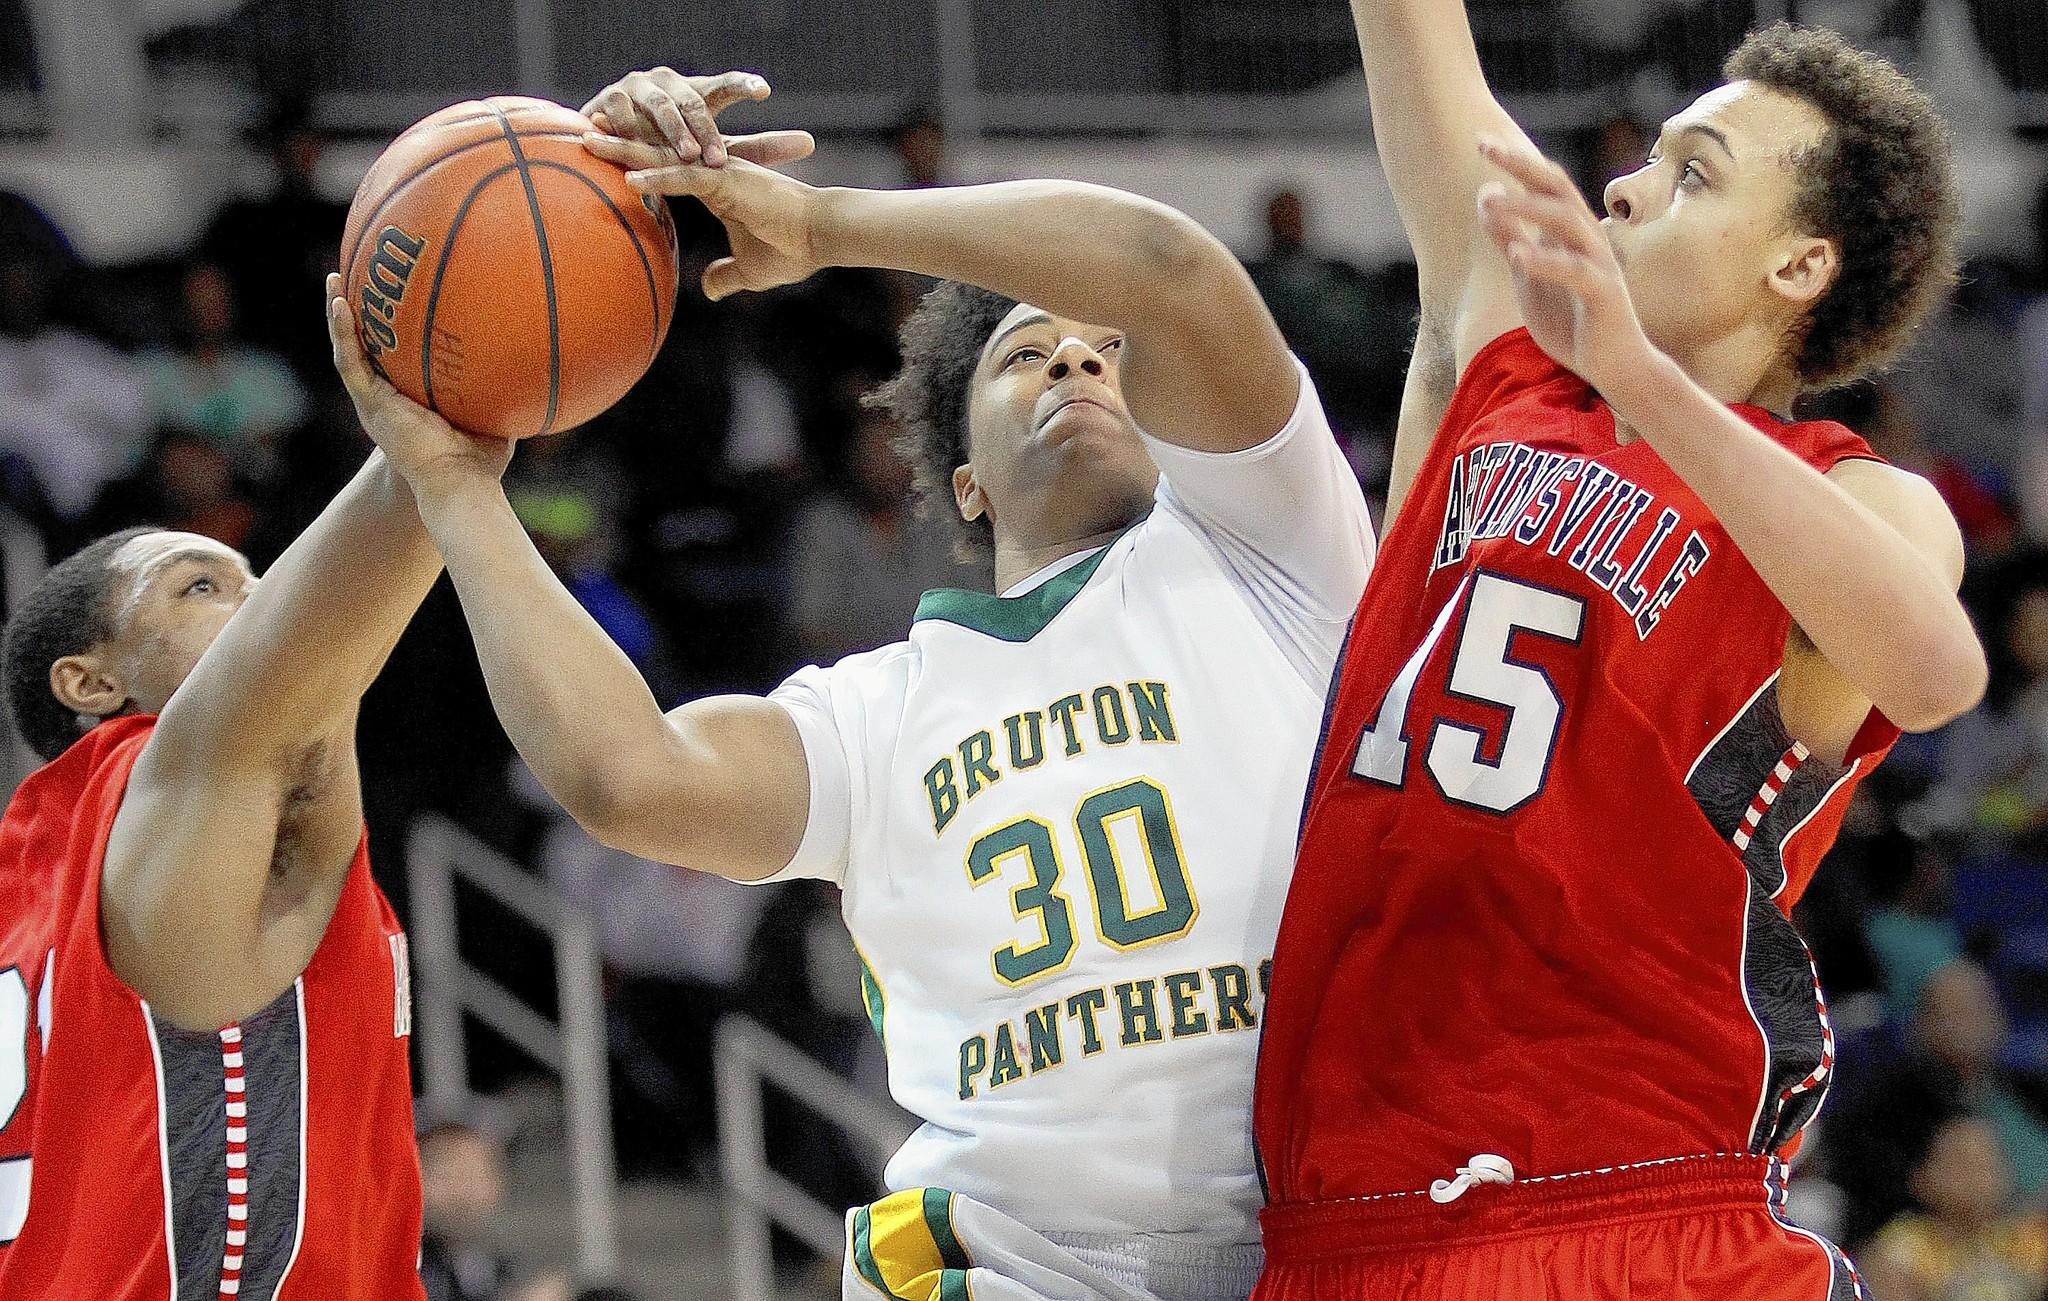 Kapri Doucet of Bruton is fouled by Cameron Turner of Martinsville as he tries to get the shot past Devonnte Holland during the second half of their 2A state semi-final game Saturday in Norfolk.